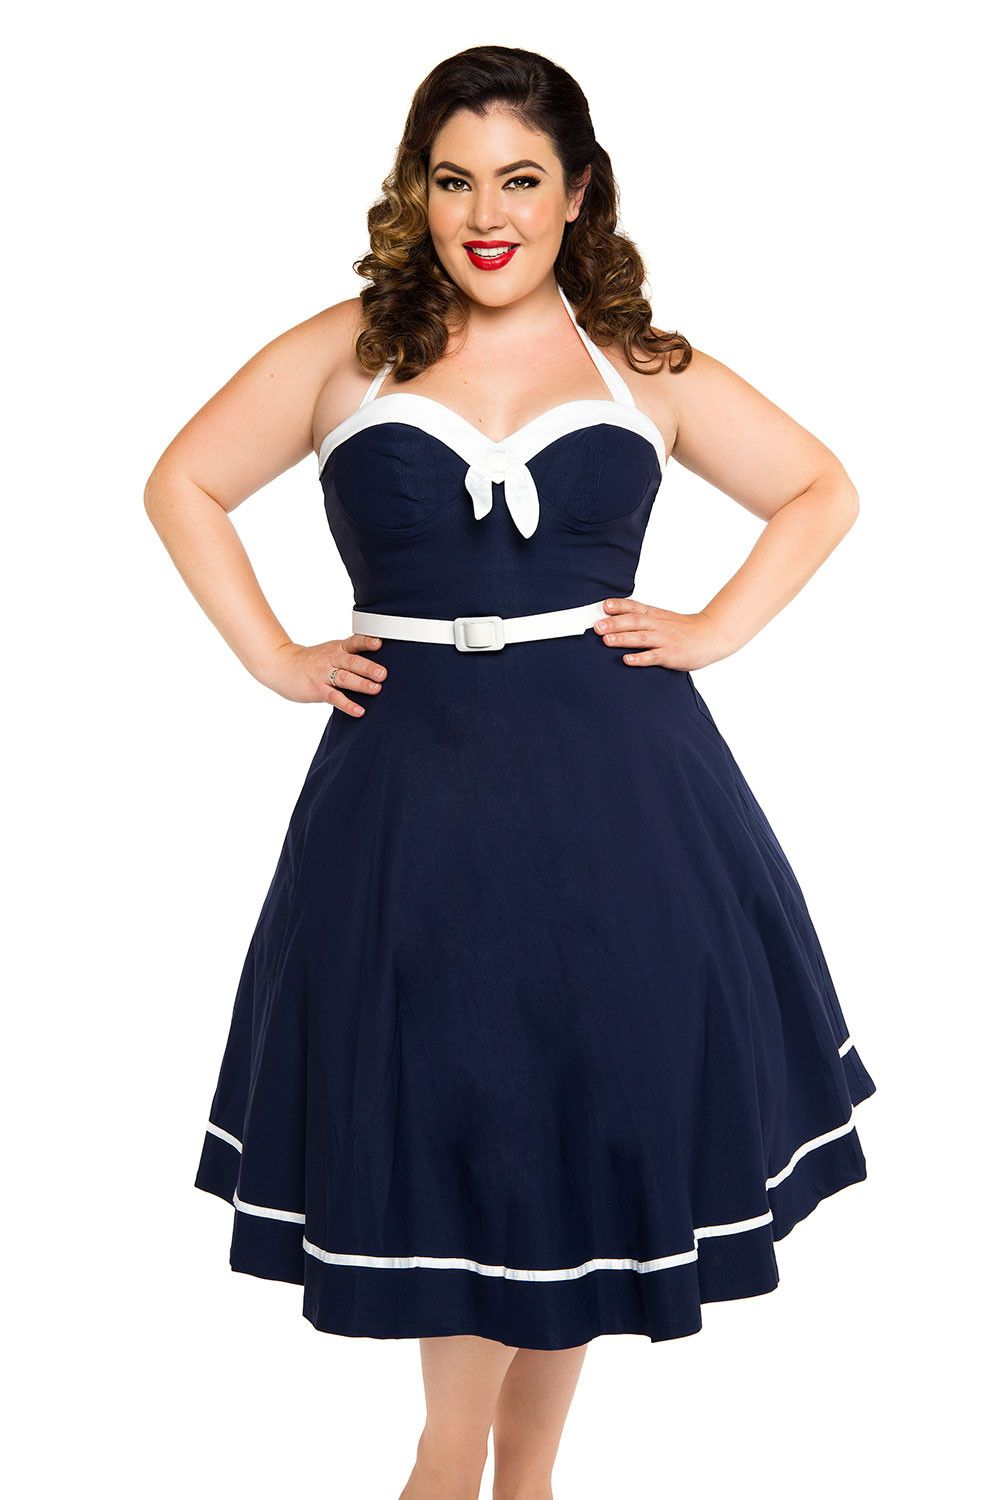 ab4c5958549 Pinup Couture - Sailor Swing Dress in Navy - Plus Size